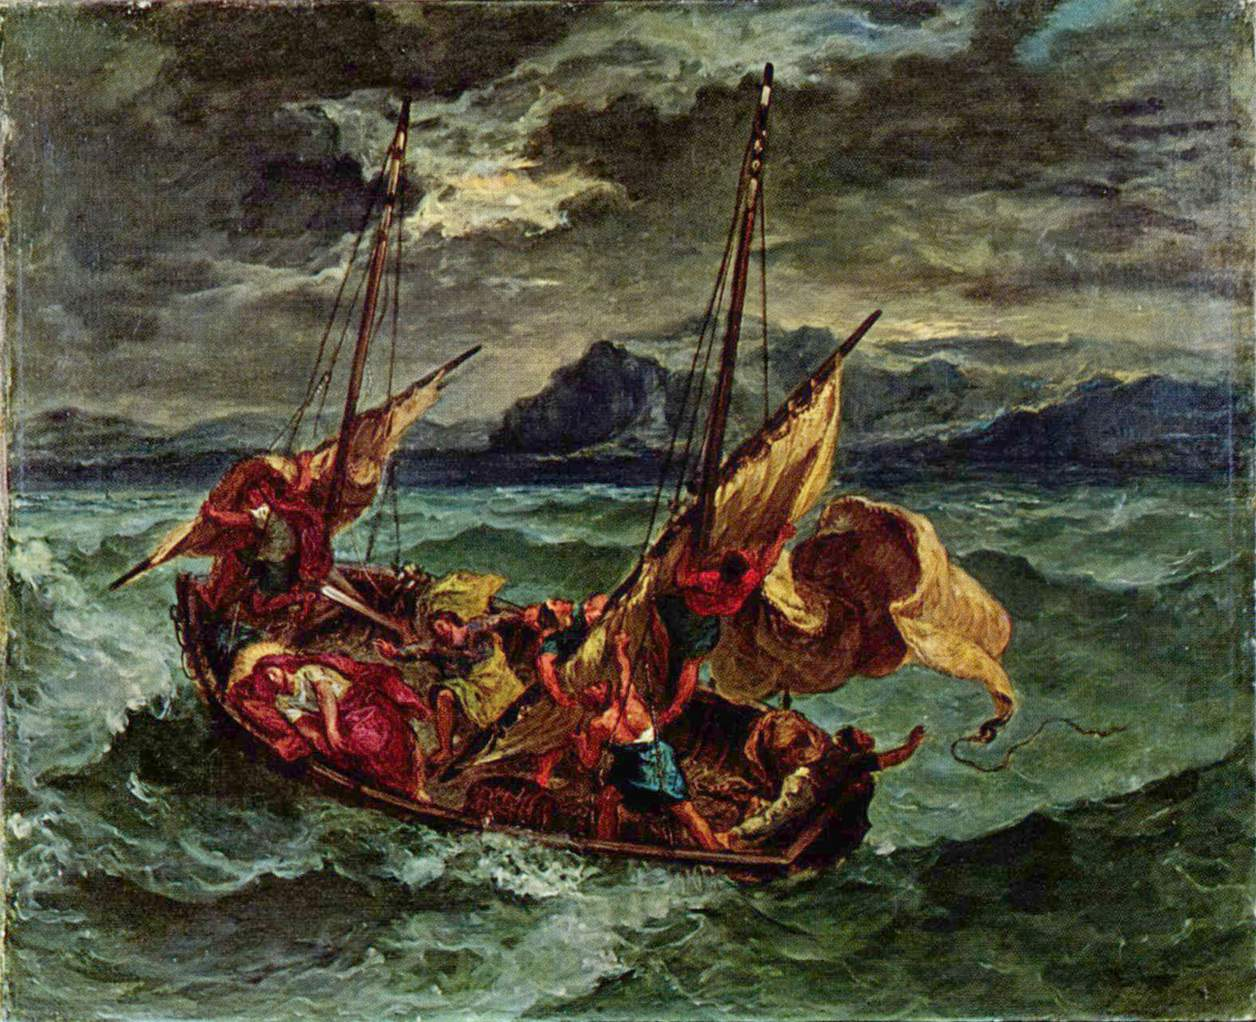 Christ on the Sea of Galilee by Eugène Delacroix Reproduction Painting by Blue Surf Art